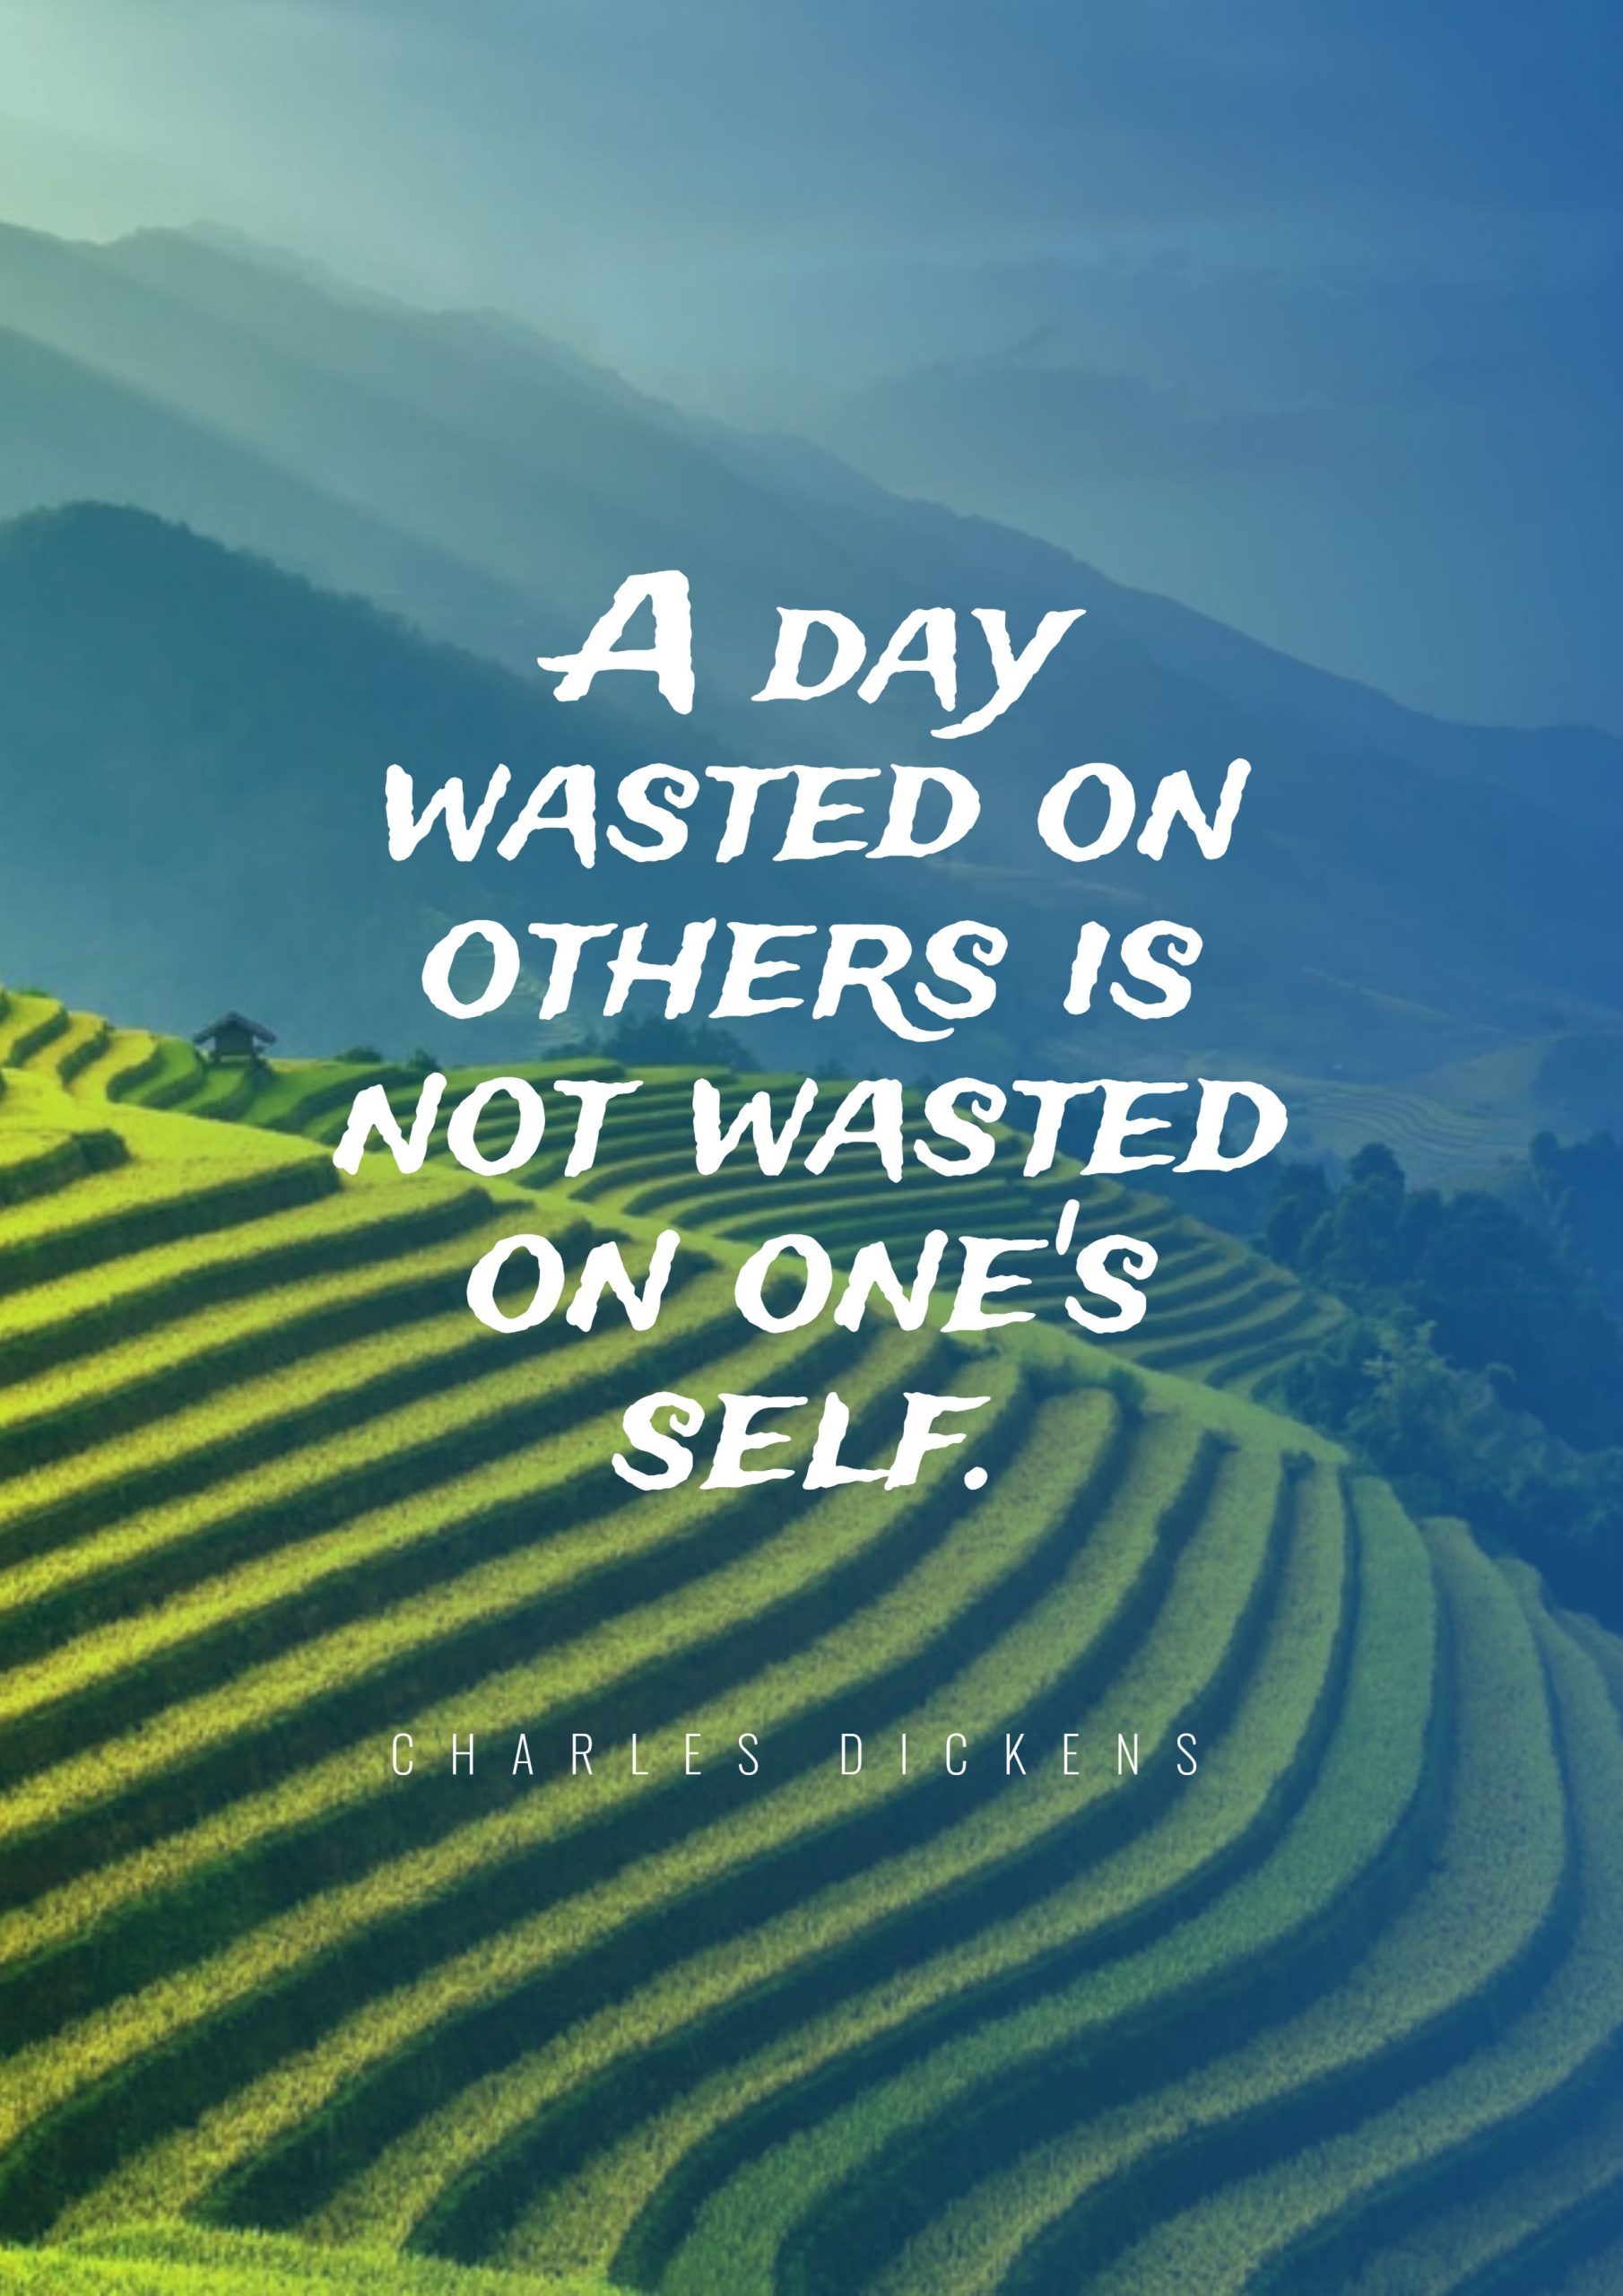 Quotes image of A day wasted on others is not wasted on one's self.